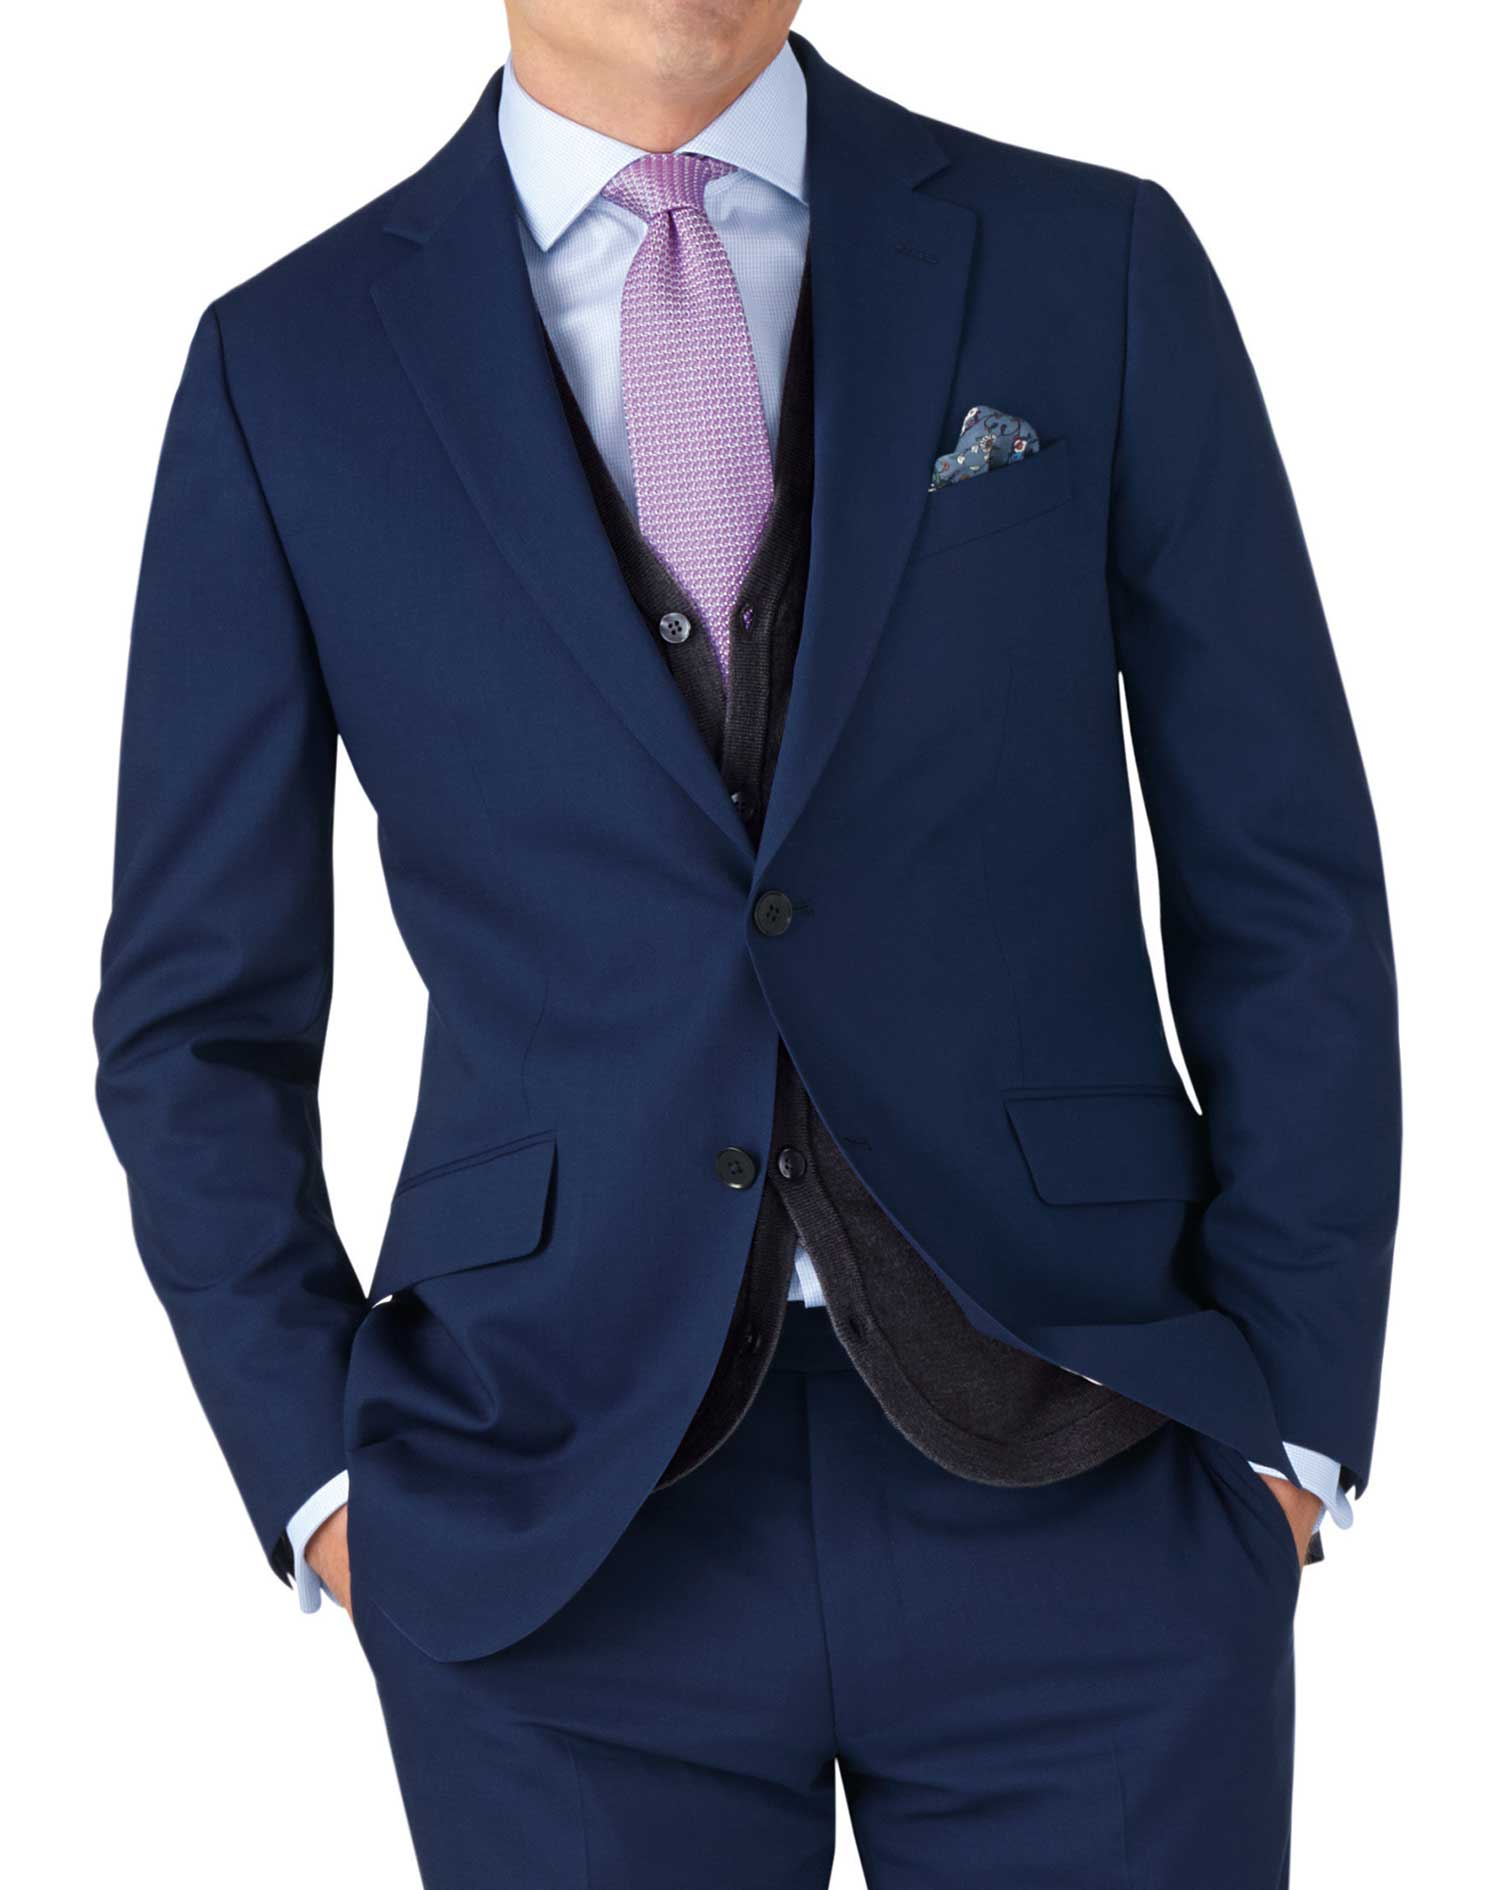 Royal Slim Fit Crepe Business Suit Wool Jacket Size 36 Short by Charles Tyrwhitt